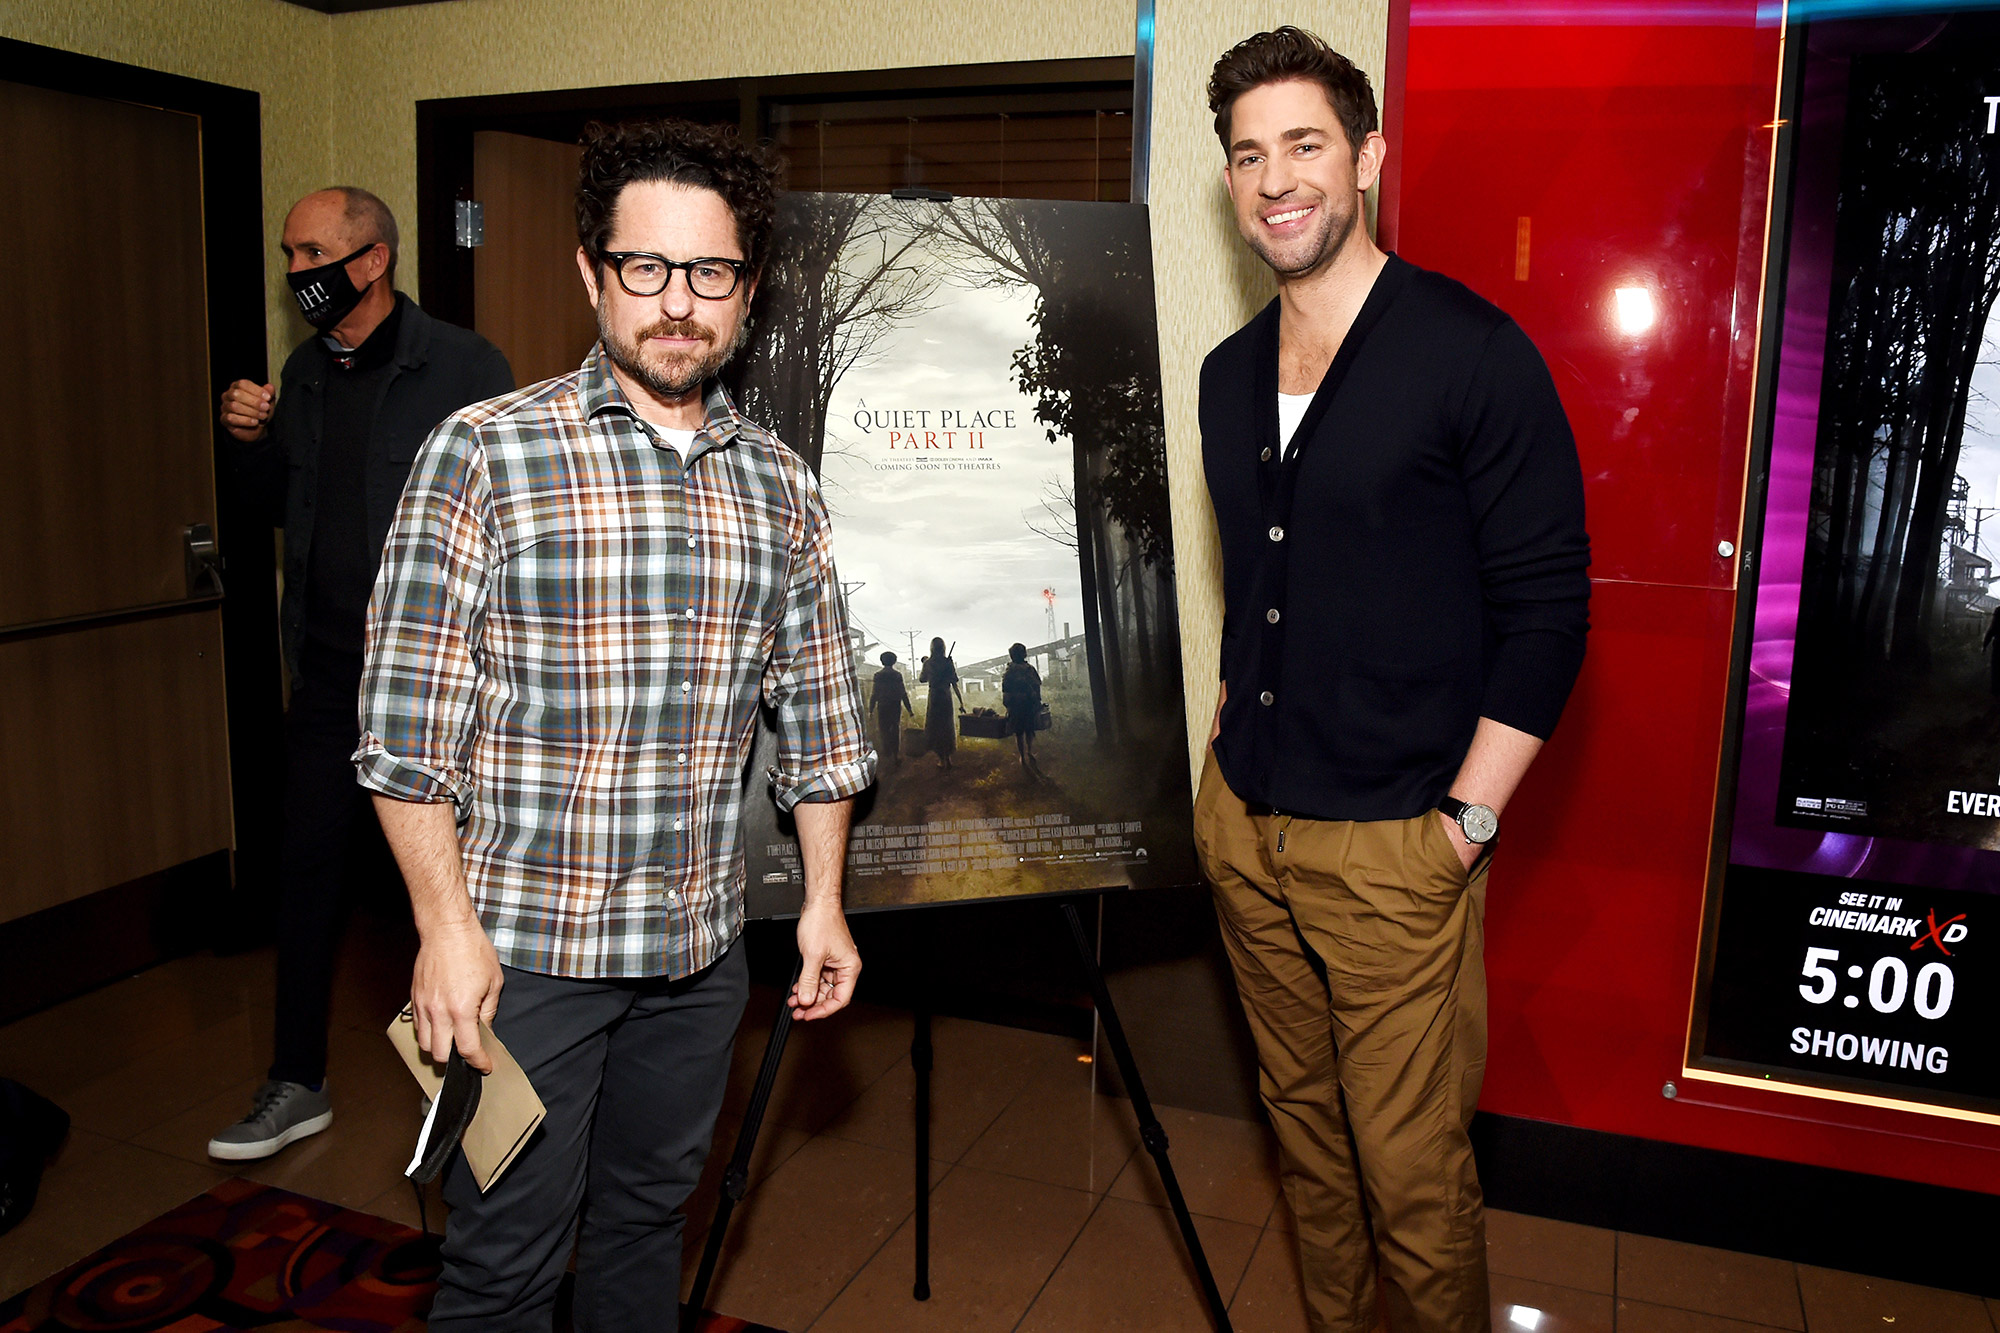 J.J. Abrams and John Krasinski attends the Los Angeles Screening of 'A Quit Place Part II' at the Cinemark Playa Vista and XD on May 27, 2021 in Los Angeles, California